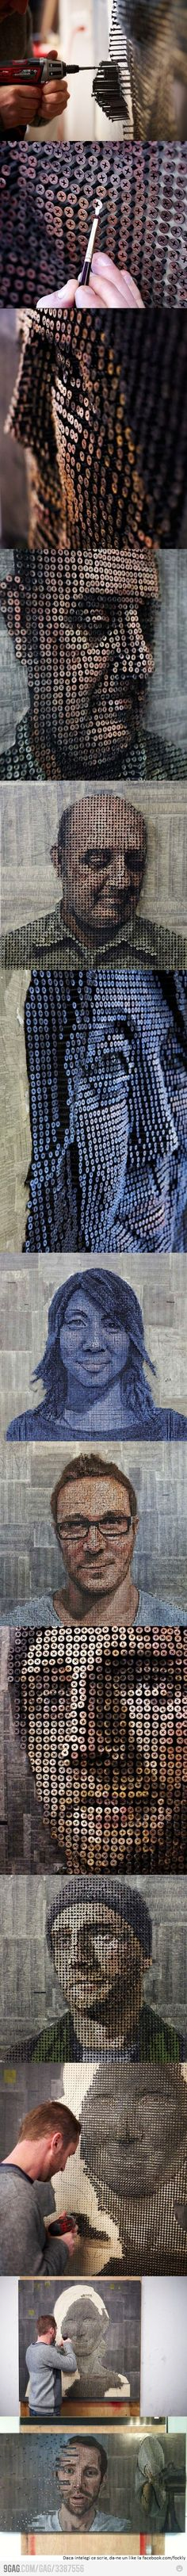 3D portraits made of screws by Andrew Myers.